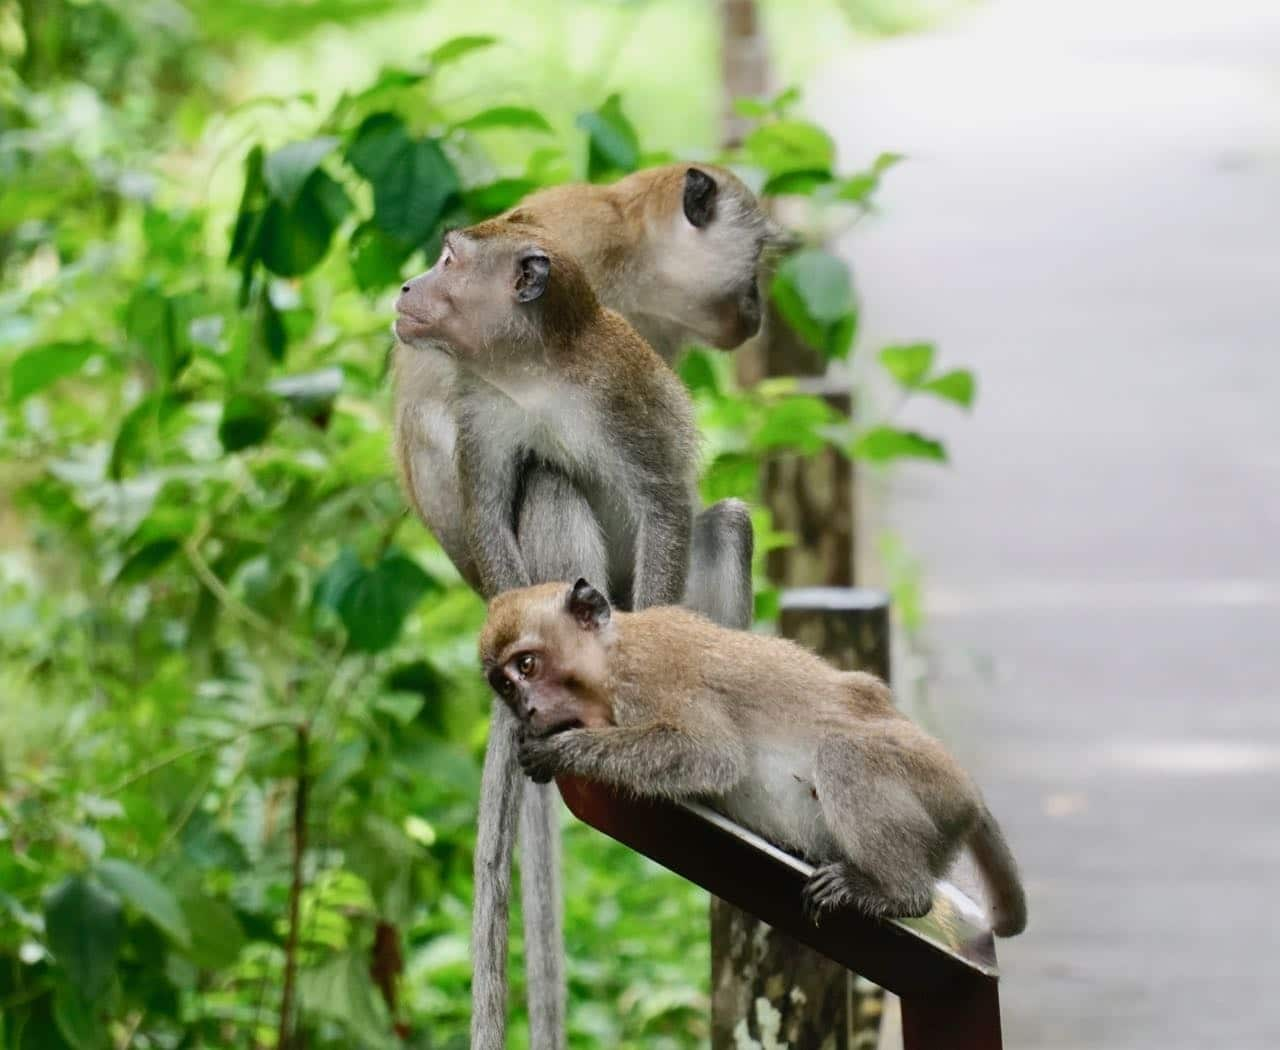 Monkeys Jungle Walking in Singapore MacRitchie Reservoir Windsor Nature Park